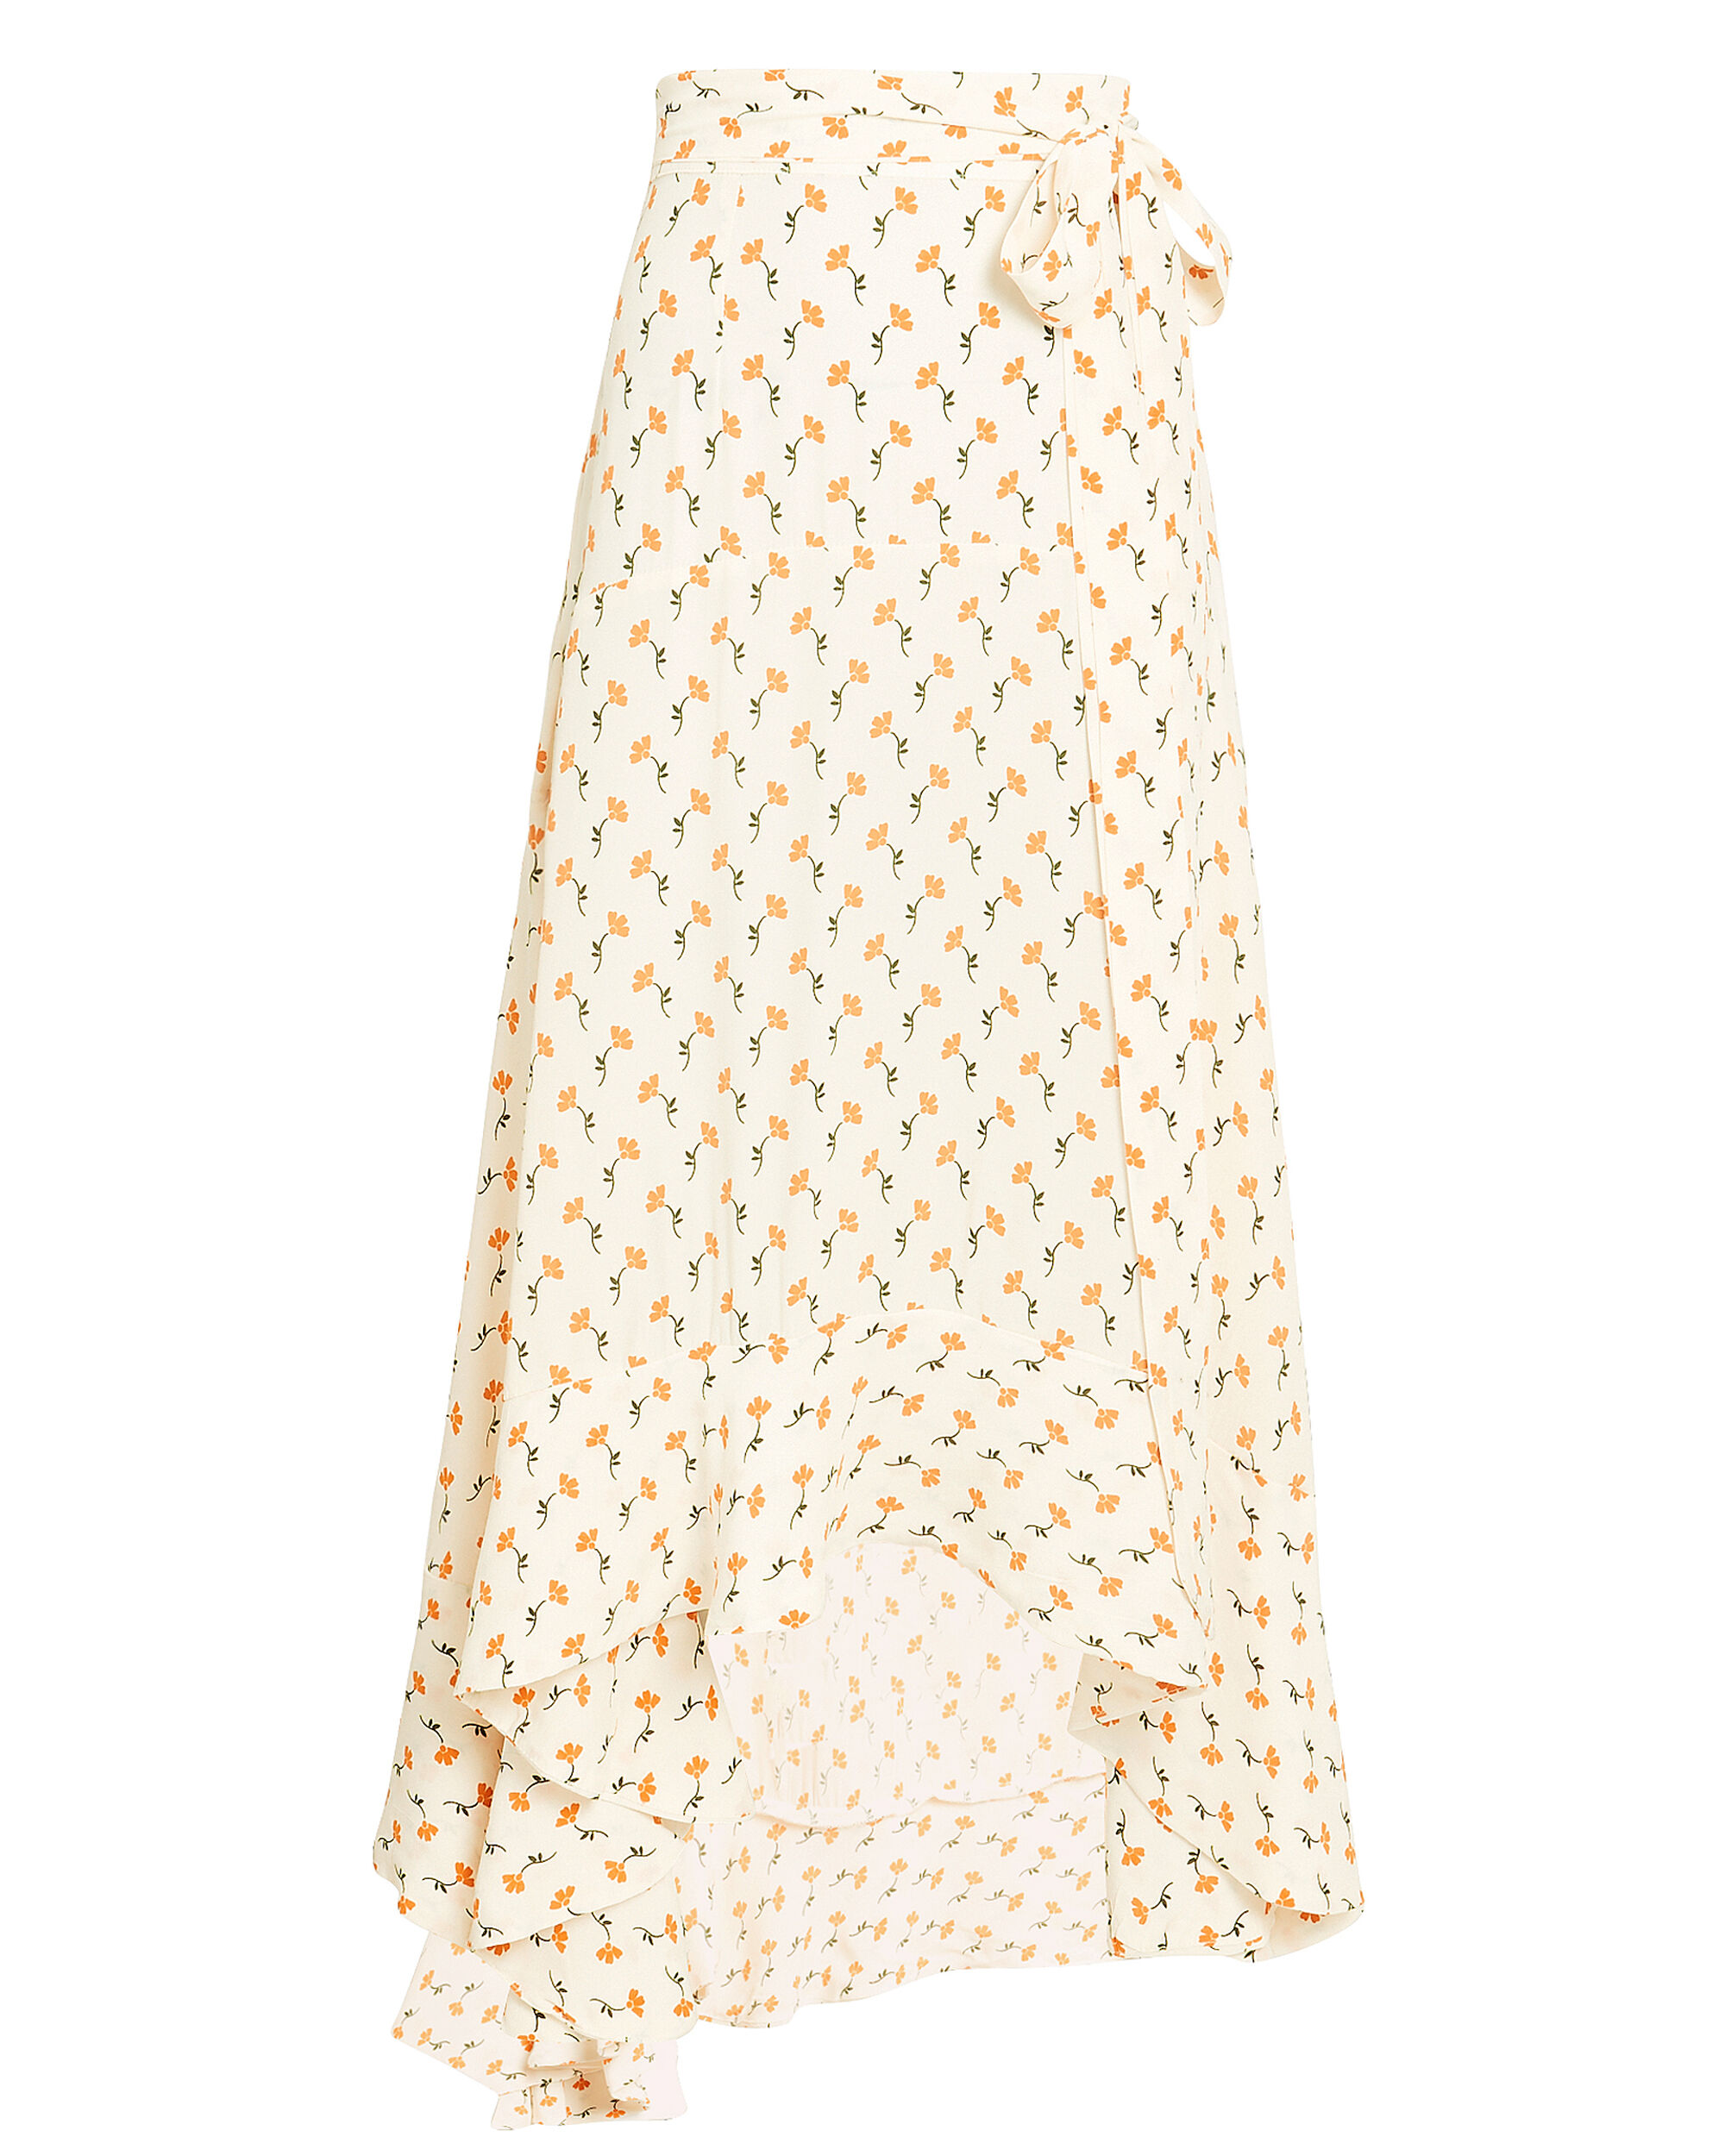 Kamares Midi Skirt, IVORY/YELLOW FLORAL, hi-res